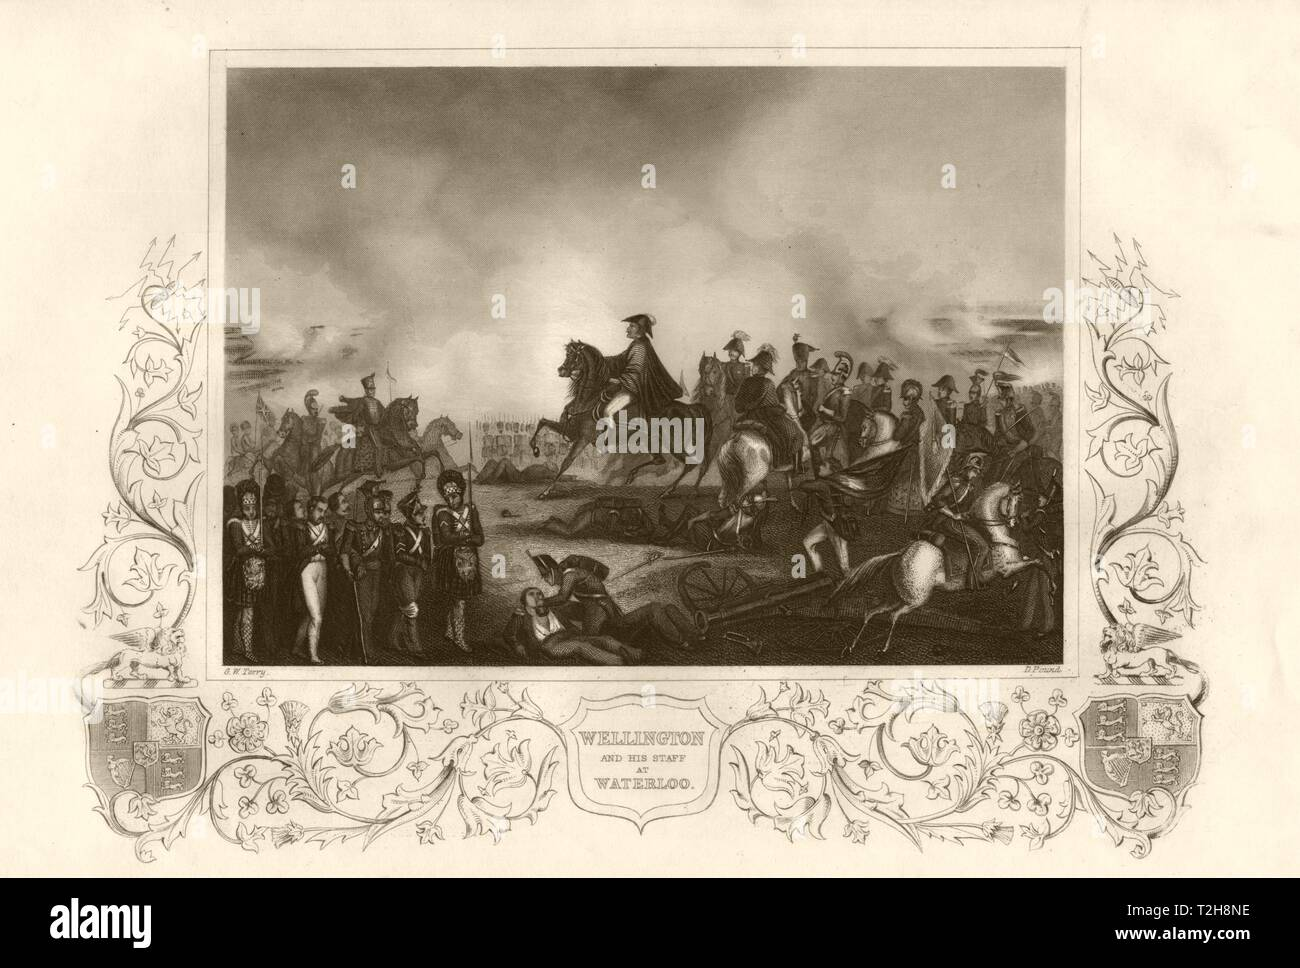 Wellington and his staff at the Battle of Waterloo. TALLIS c1855 old print - Stock Image